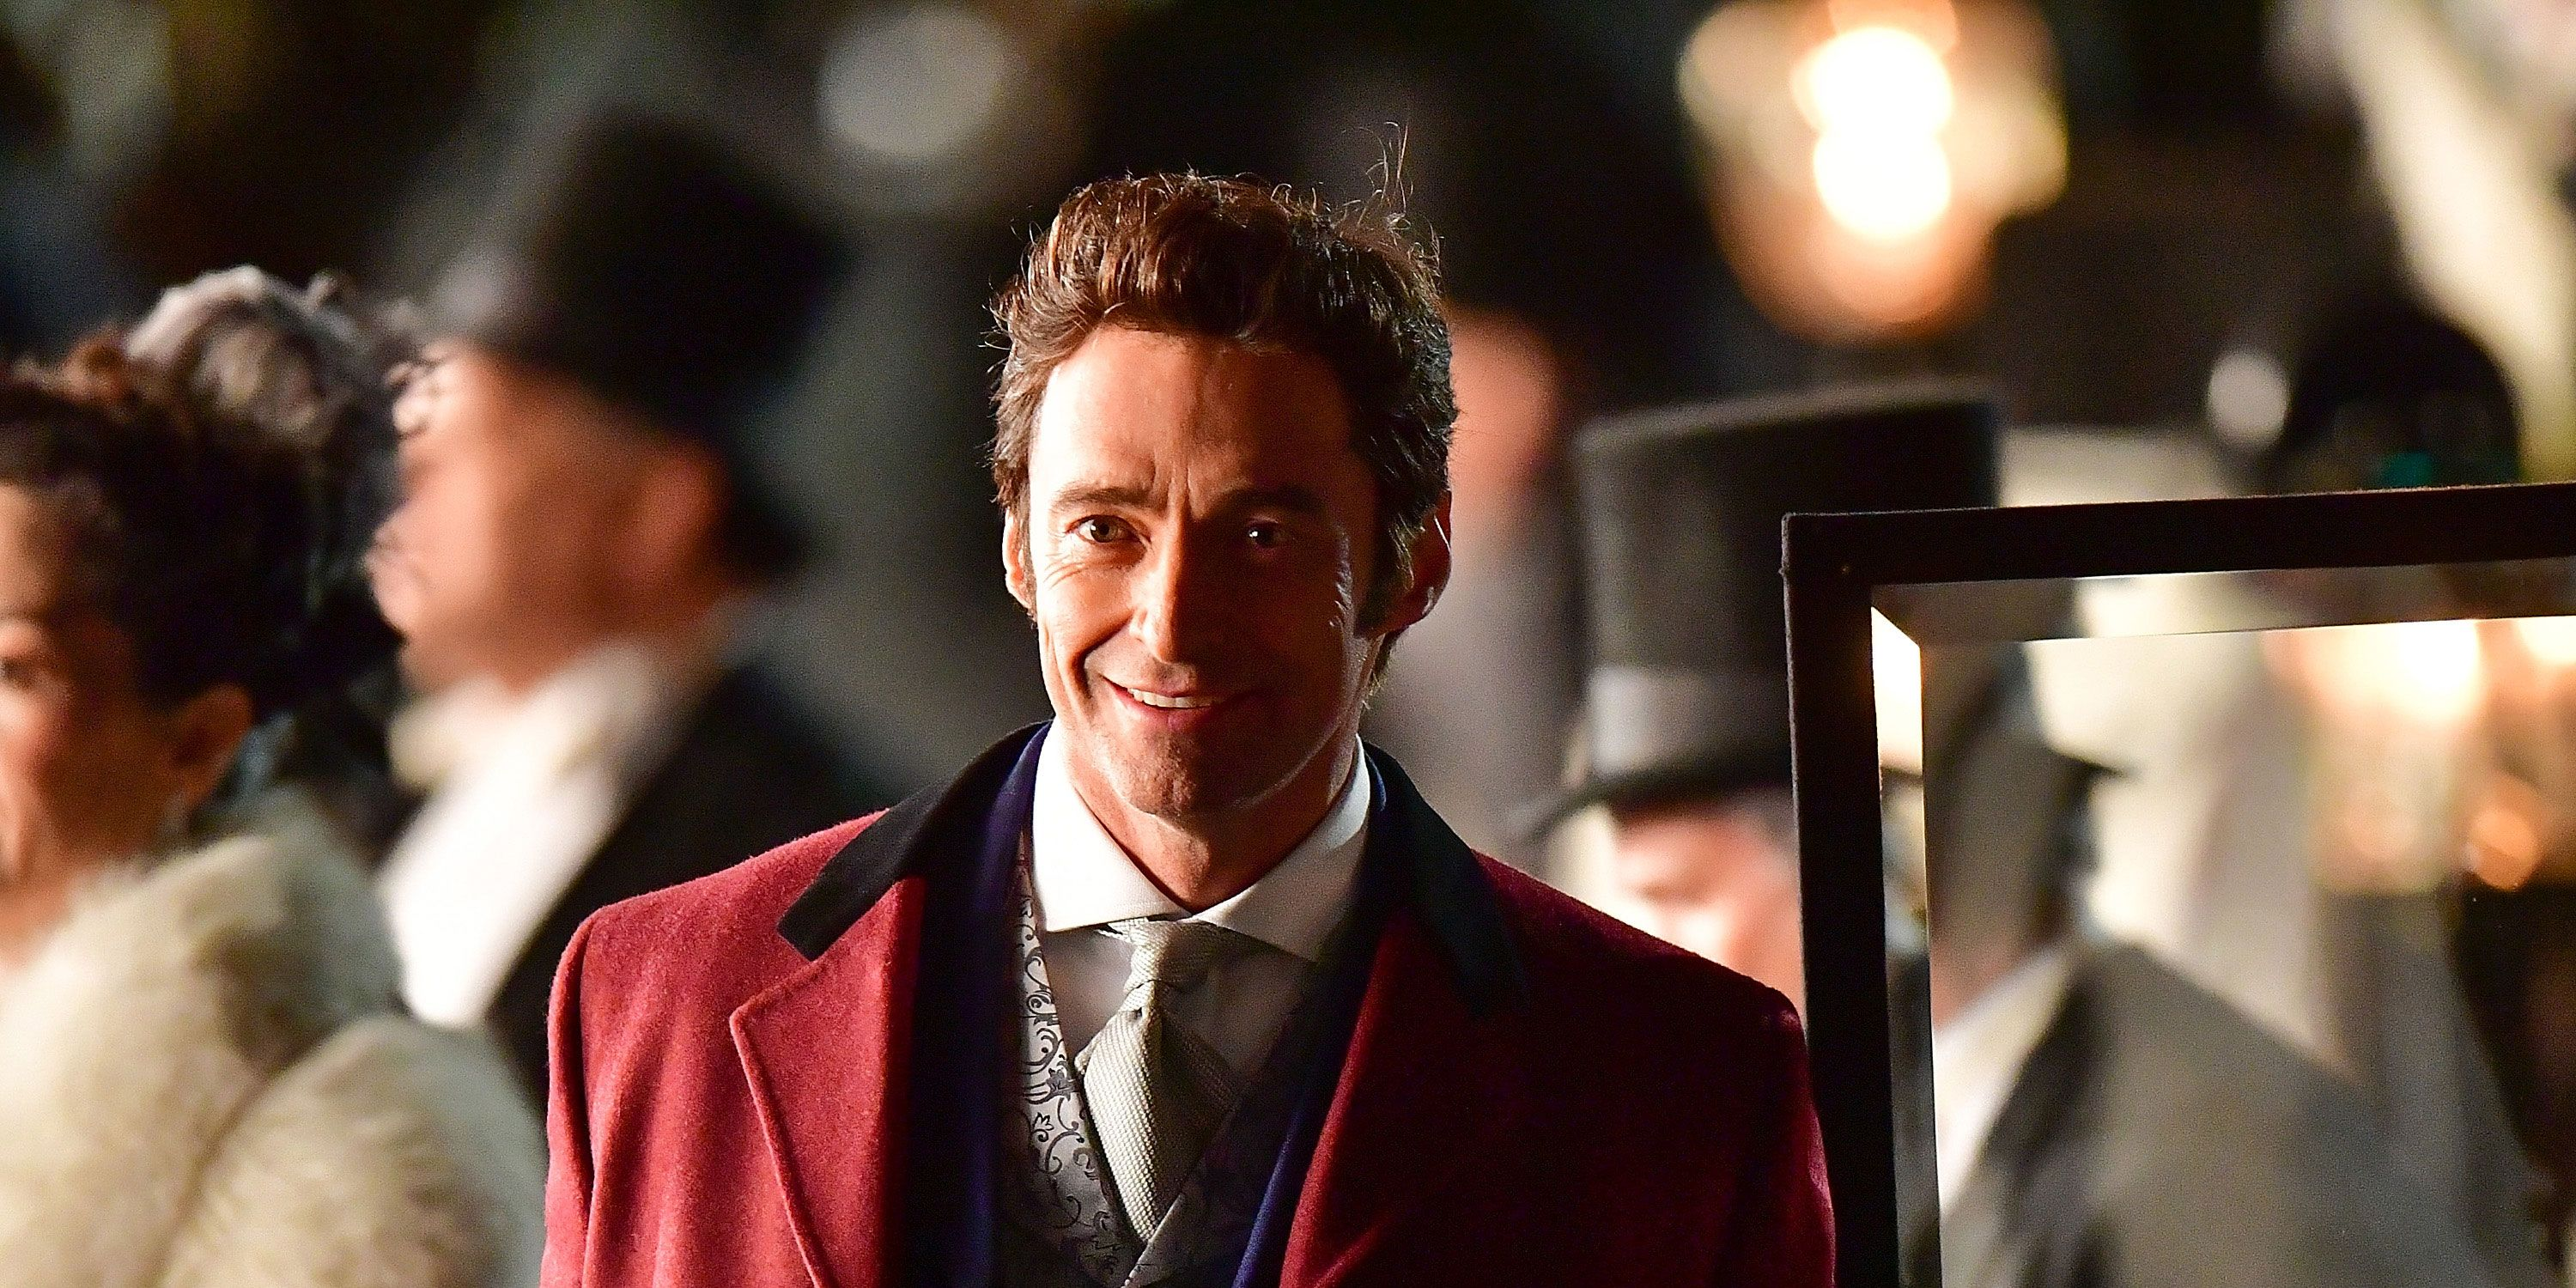 Hugh Jackman - First look at Hugh Jackman as PT Barnum in The Greatest Showman